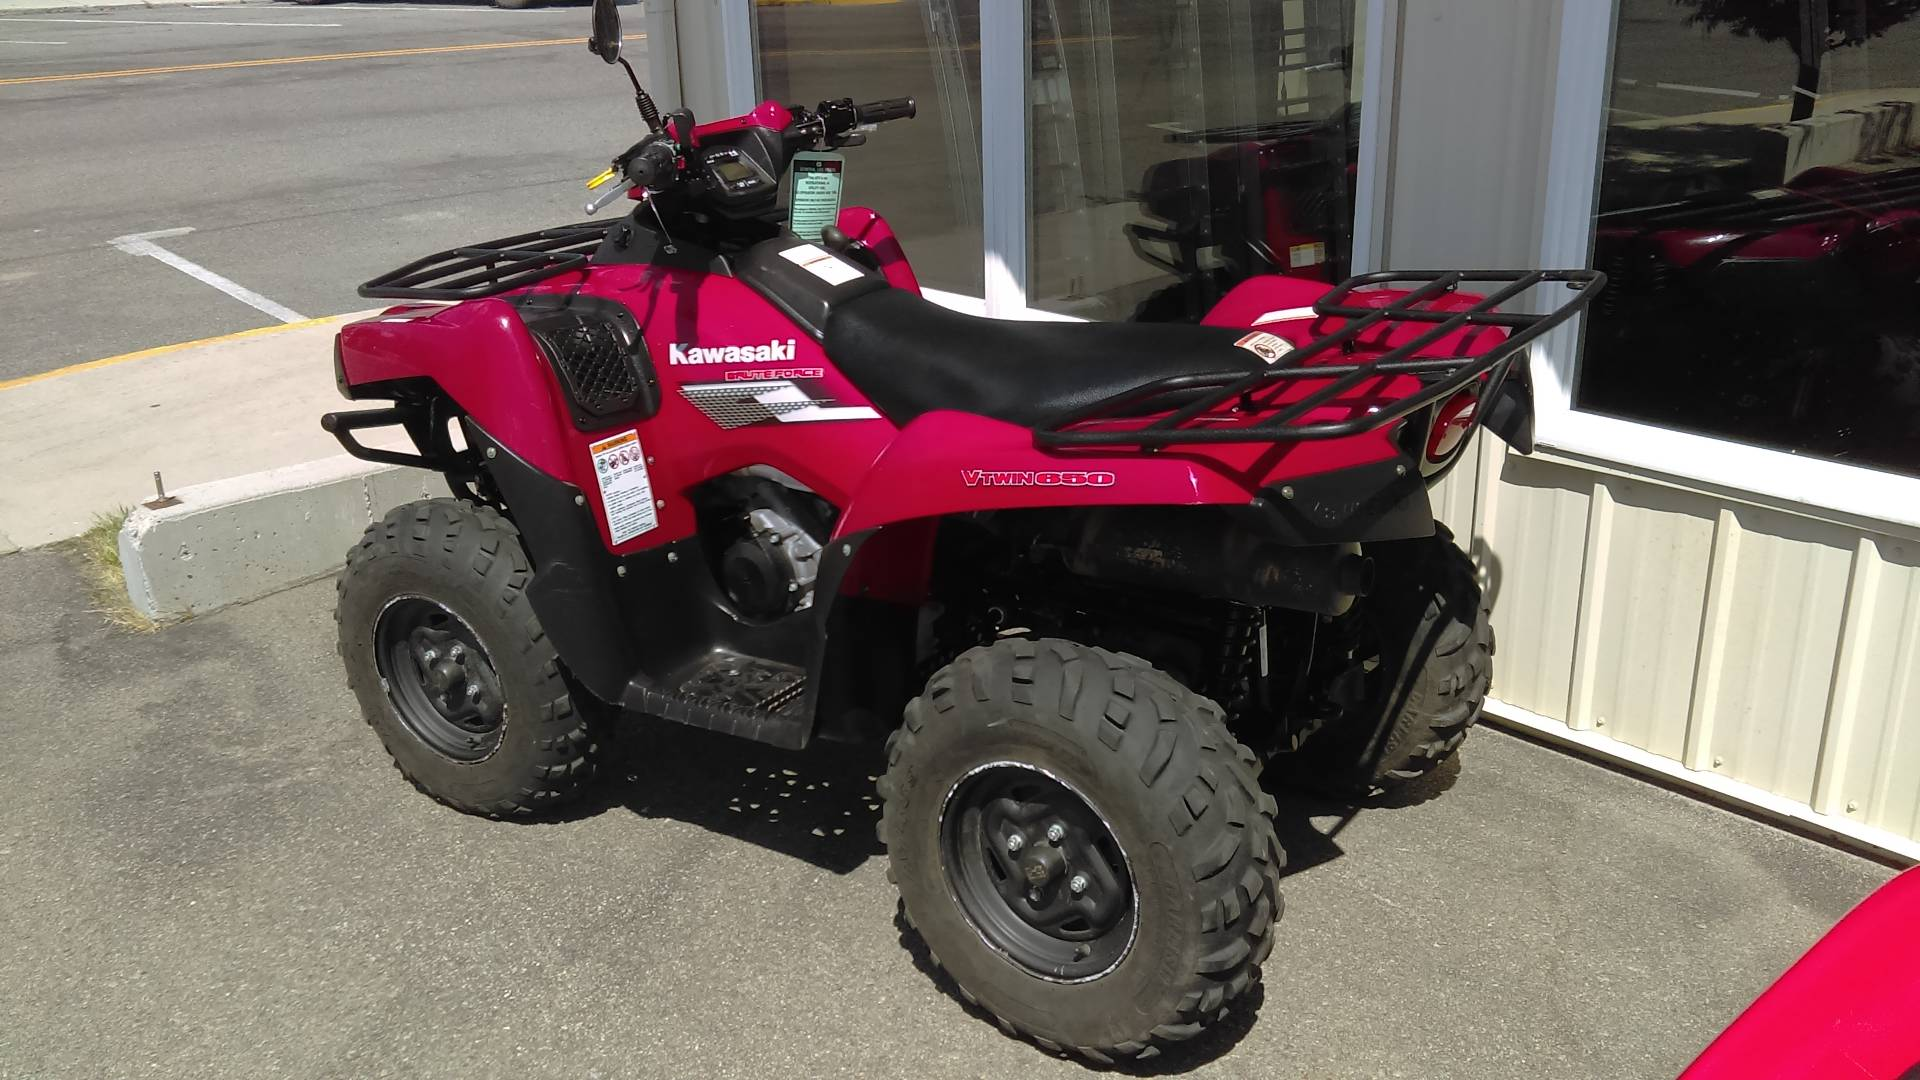 Used 2007 Kawasaki Brute Force™ 650 4x4   ATVs in Butte MT   N/A ...